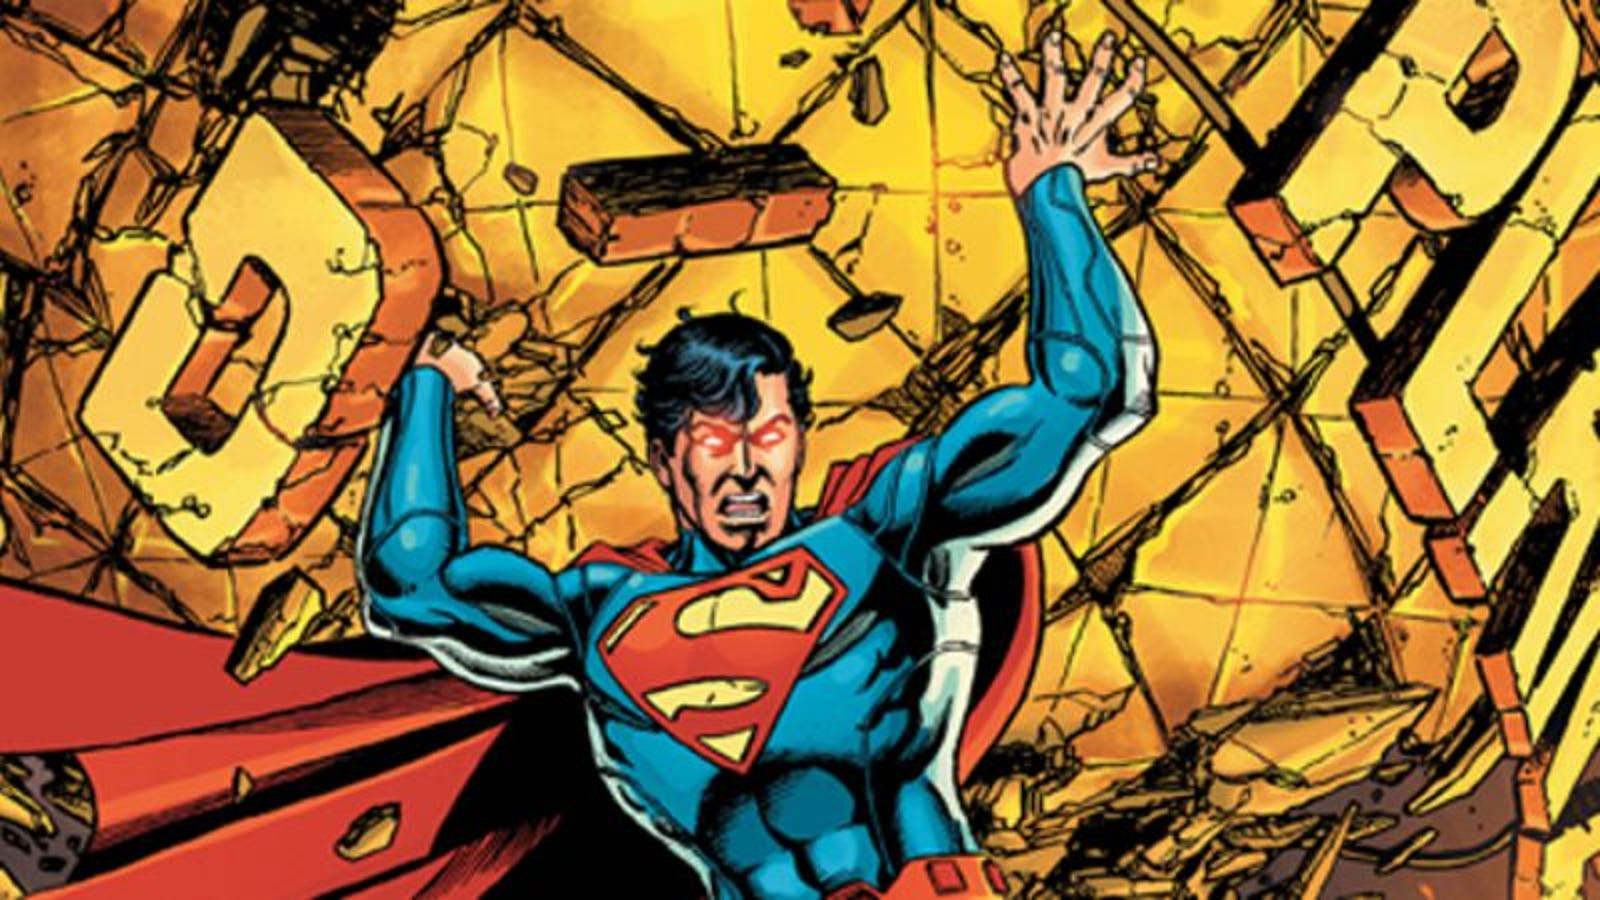 The New Dc 52 Week 5 Aquaman Superman All Star Western And More